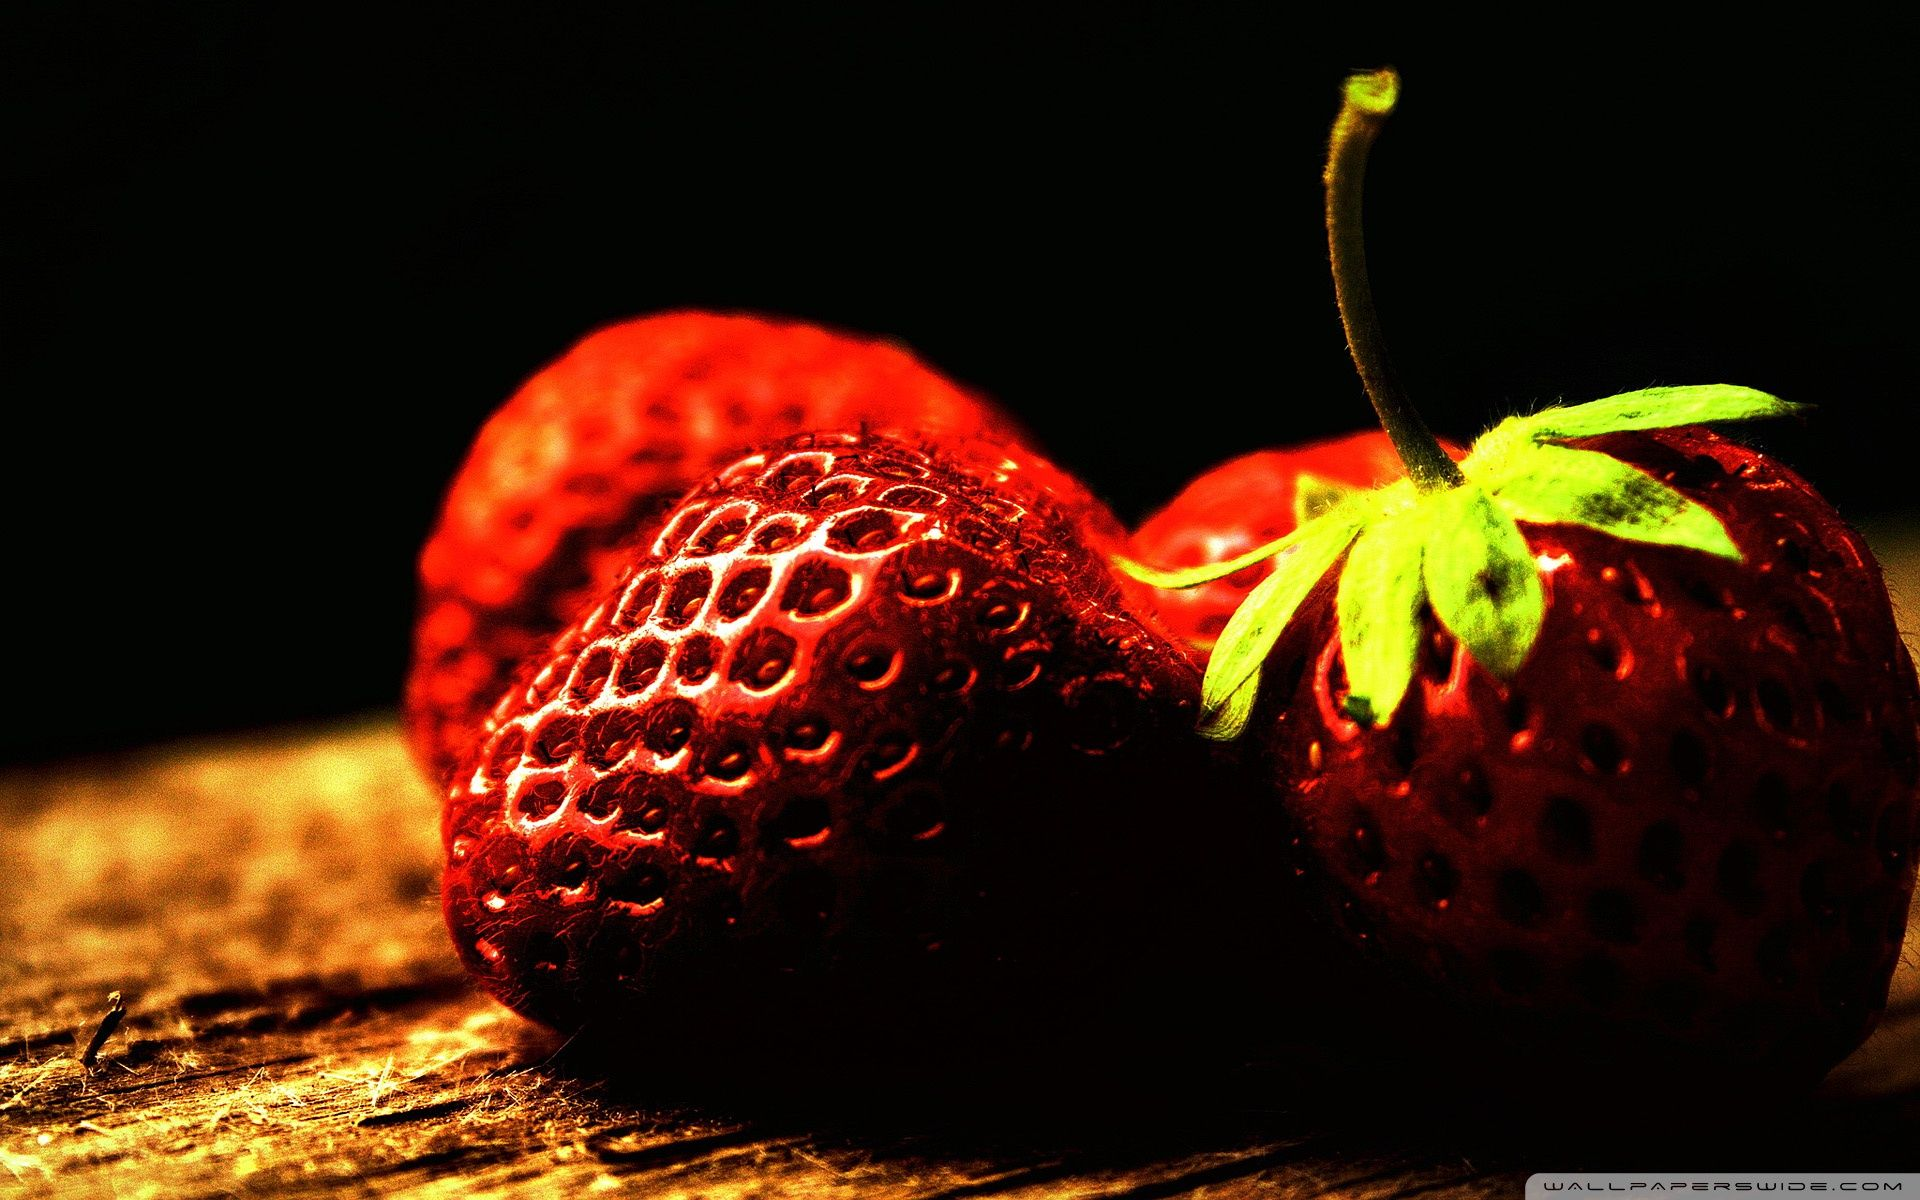 Hd Wallpapers Zedge 1600 900 Zedge Wallpapers For Desktop 48 Wallpapers Adorable Wallpapers Fruit Wallpaper Fruit Wallpaper Photography Fruit